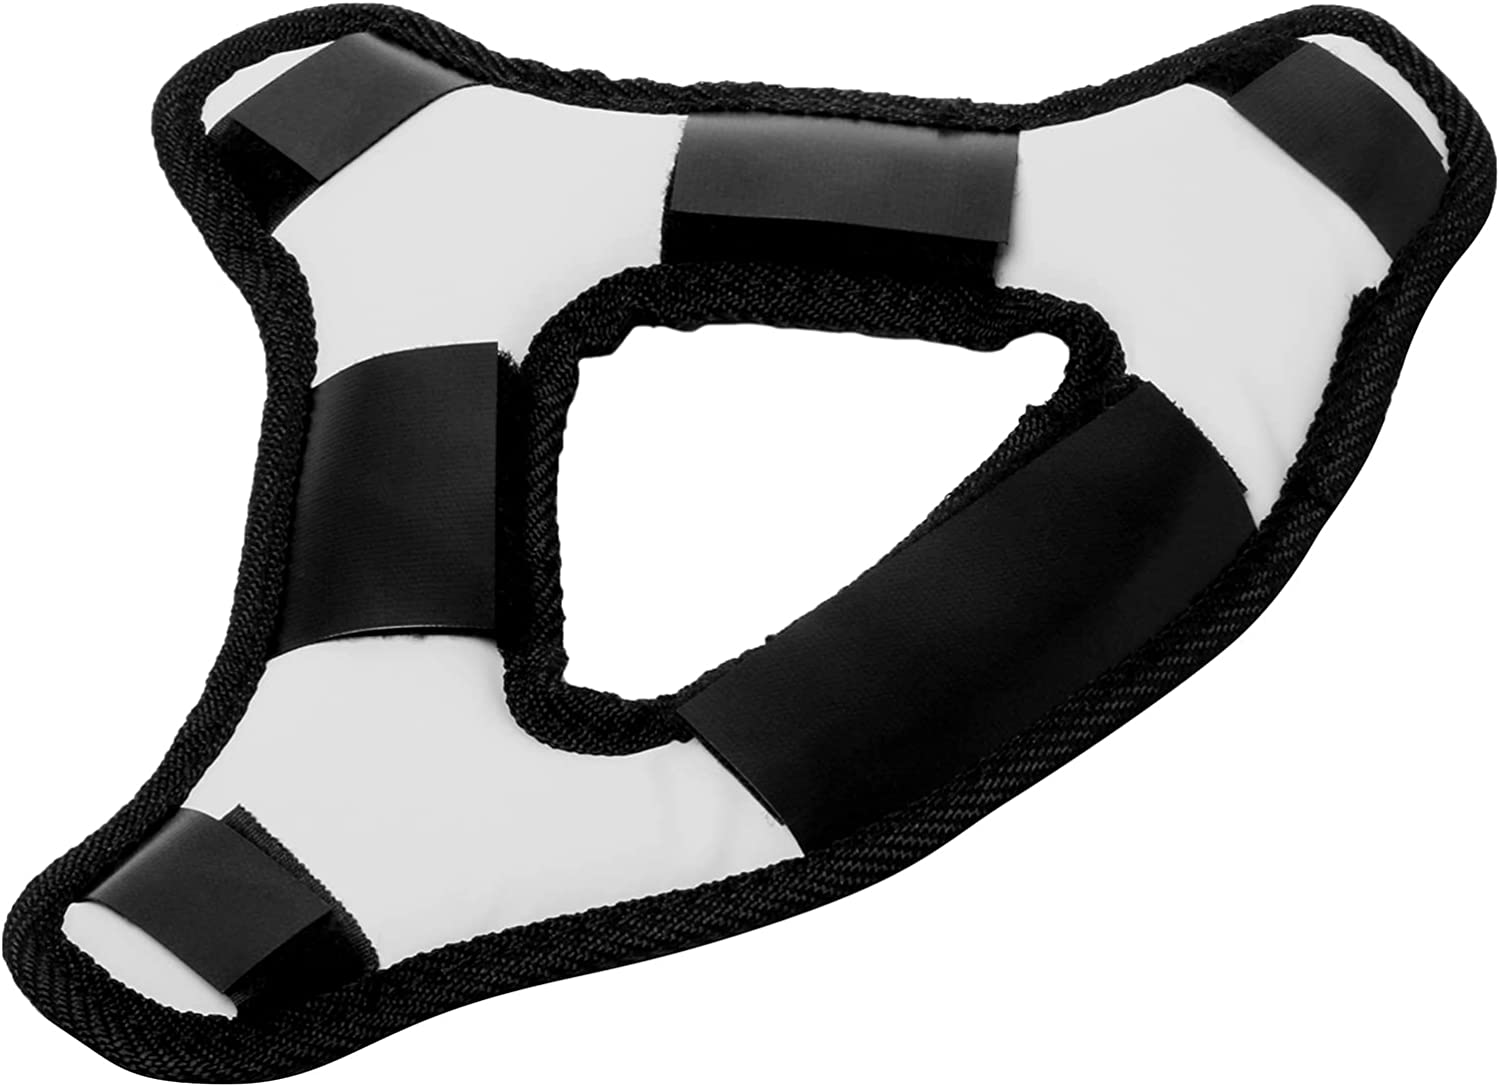 Comfortable Headband VR Head Strap Fits for Oculus Quest 2 Gaming Headset Reduce Head Pressure Protect Head Pad (White)